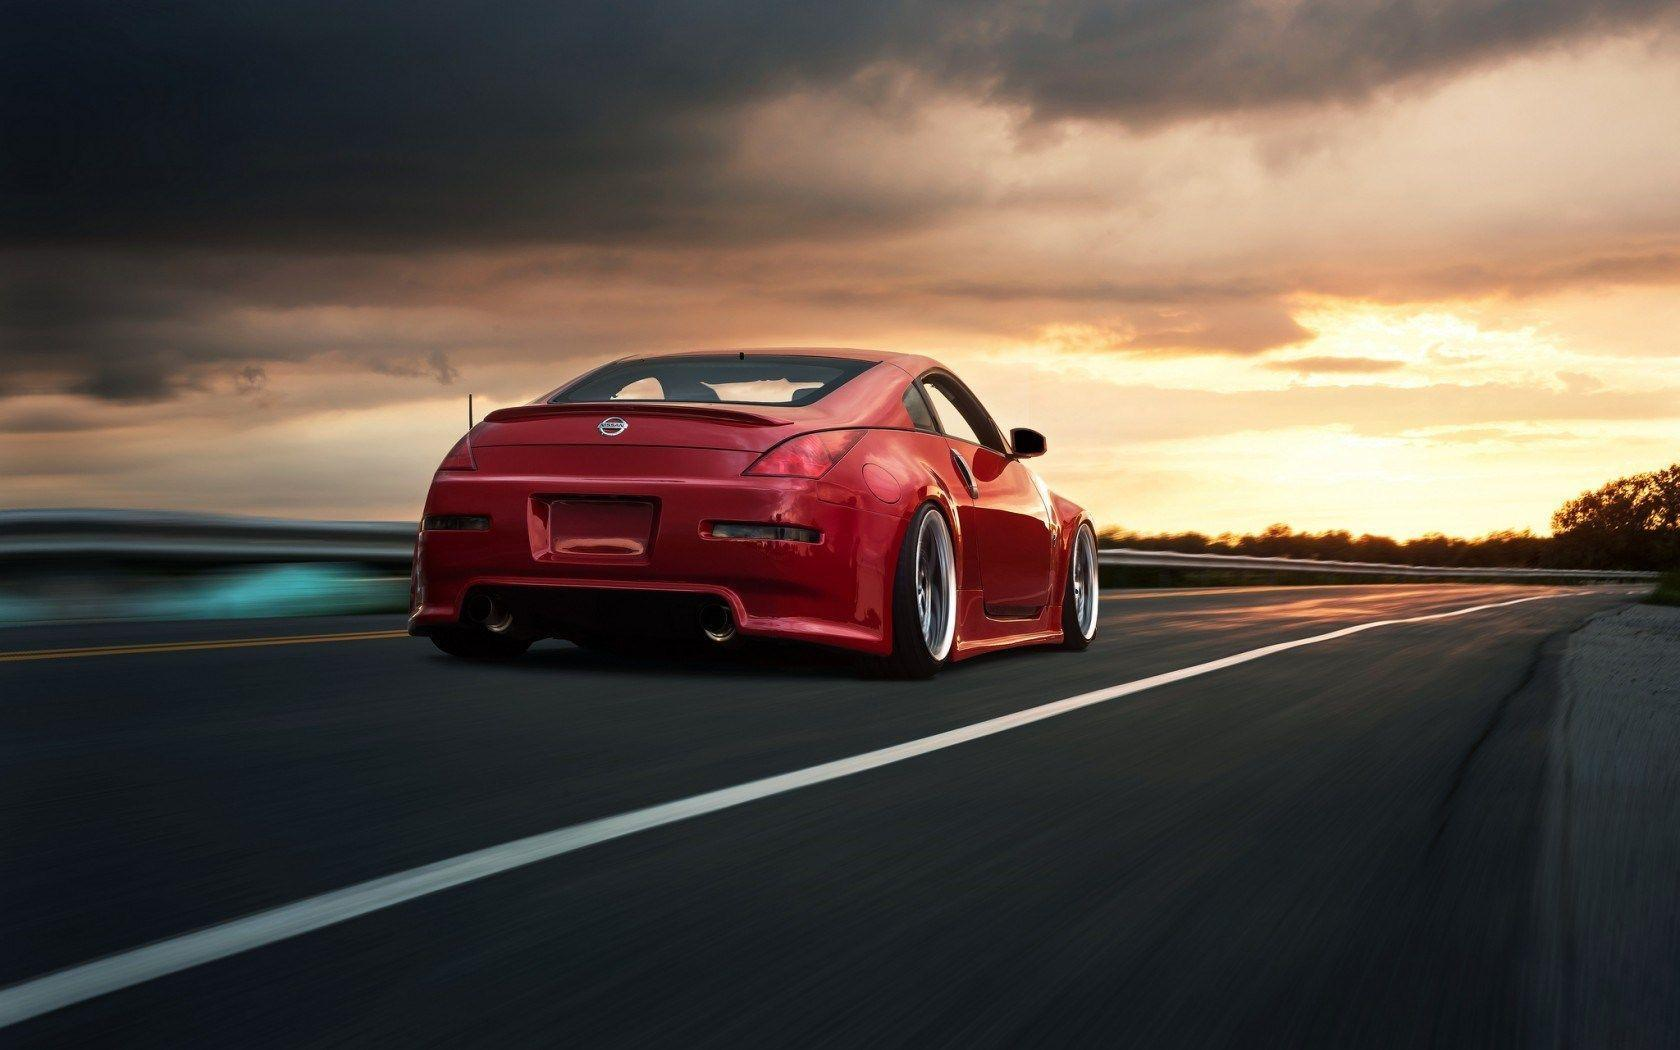 50 Nissan 350z Wallpapers | Nissan 350z Backgrounds